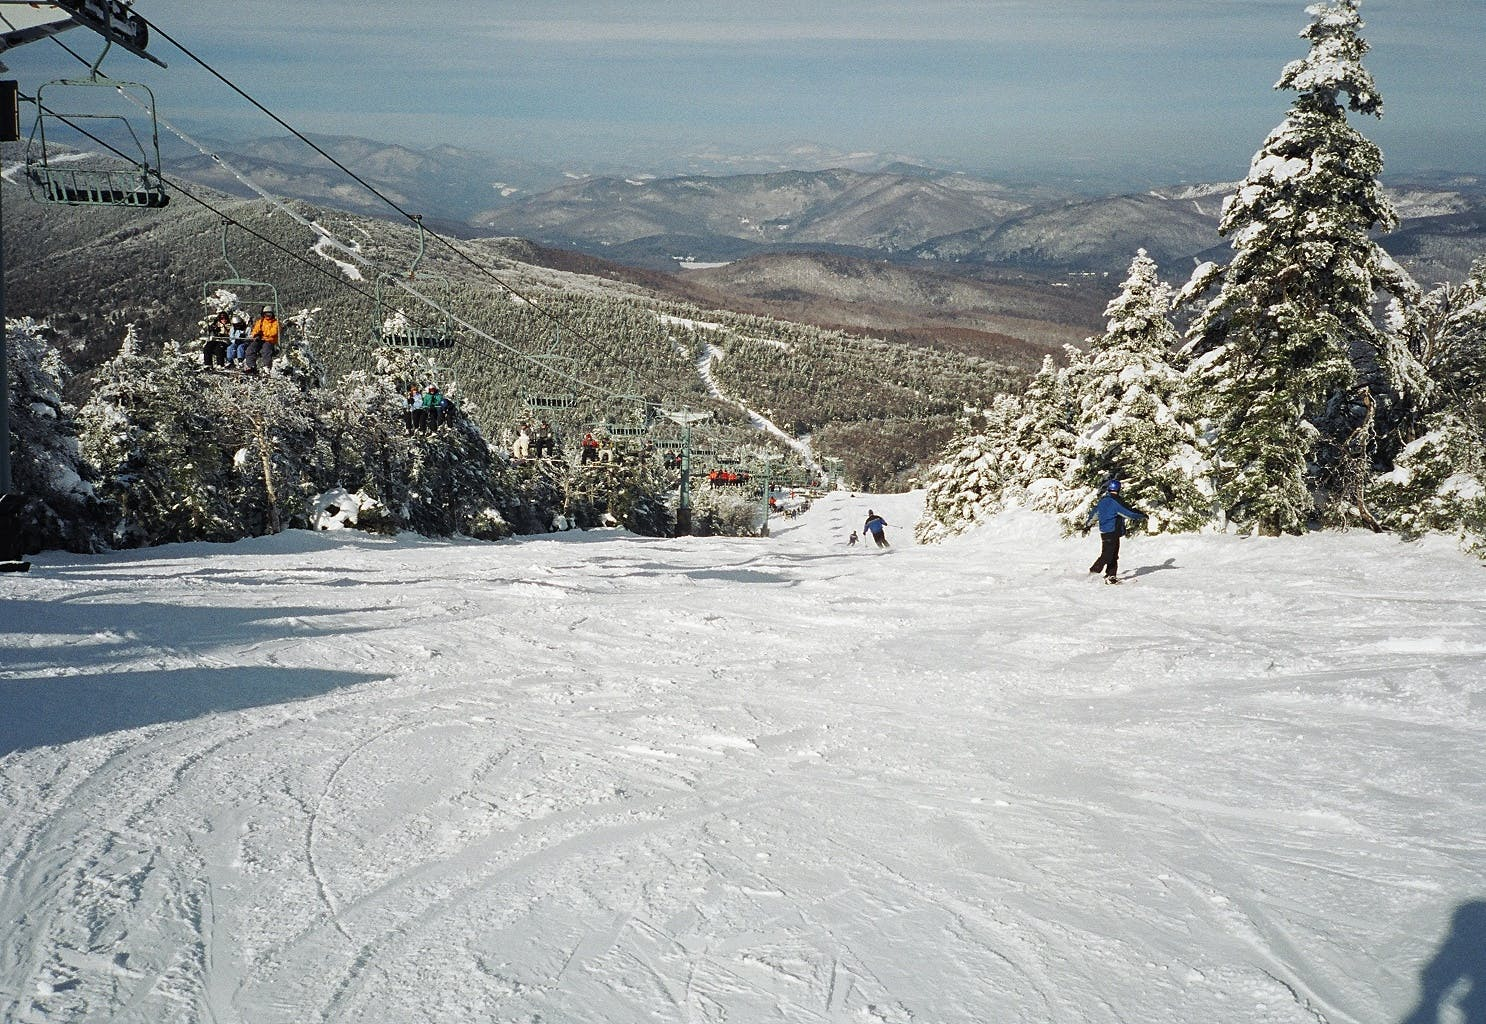 skiers going down a run at North Ridge of Killington Resort